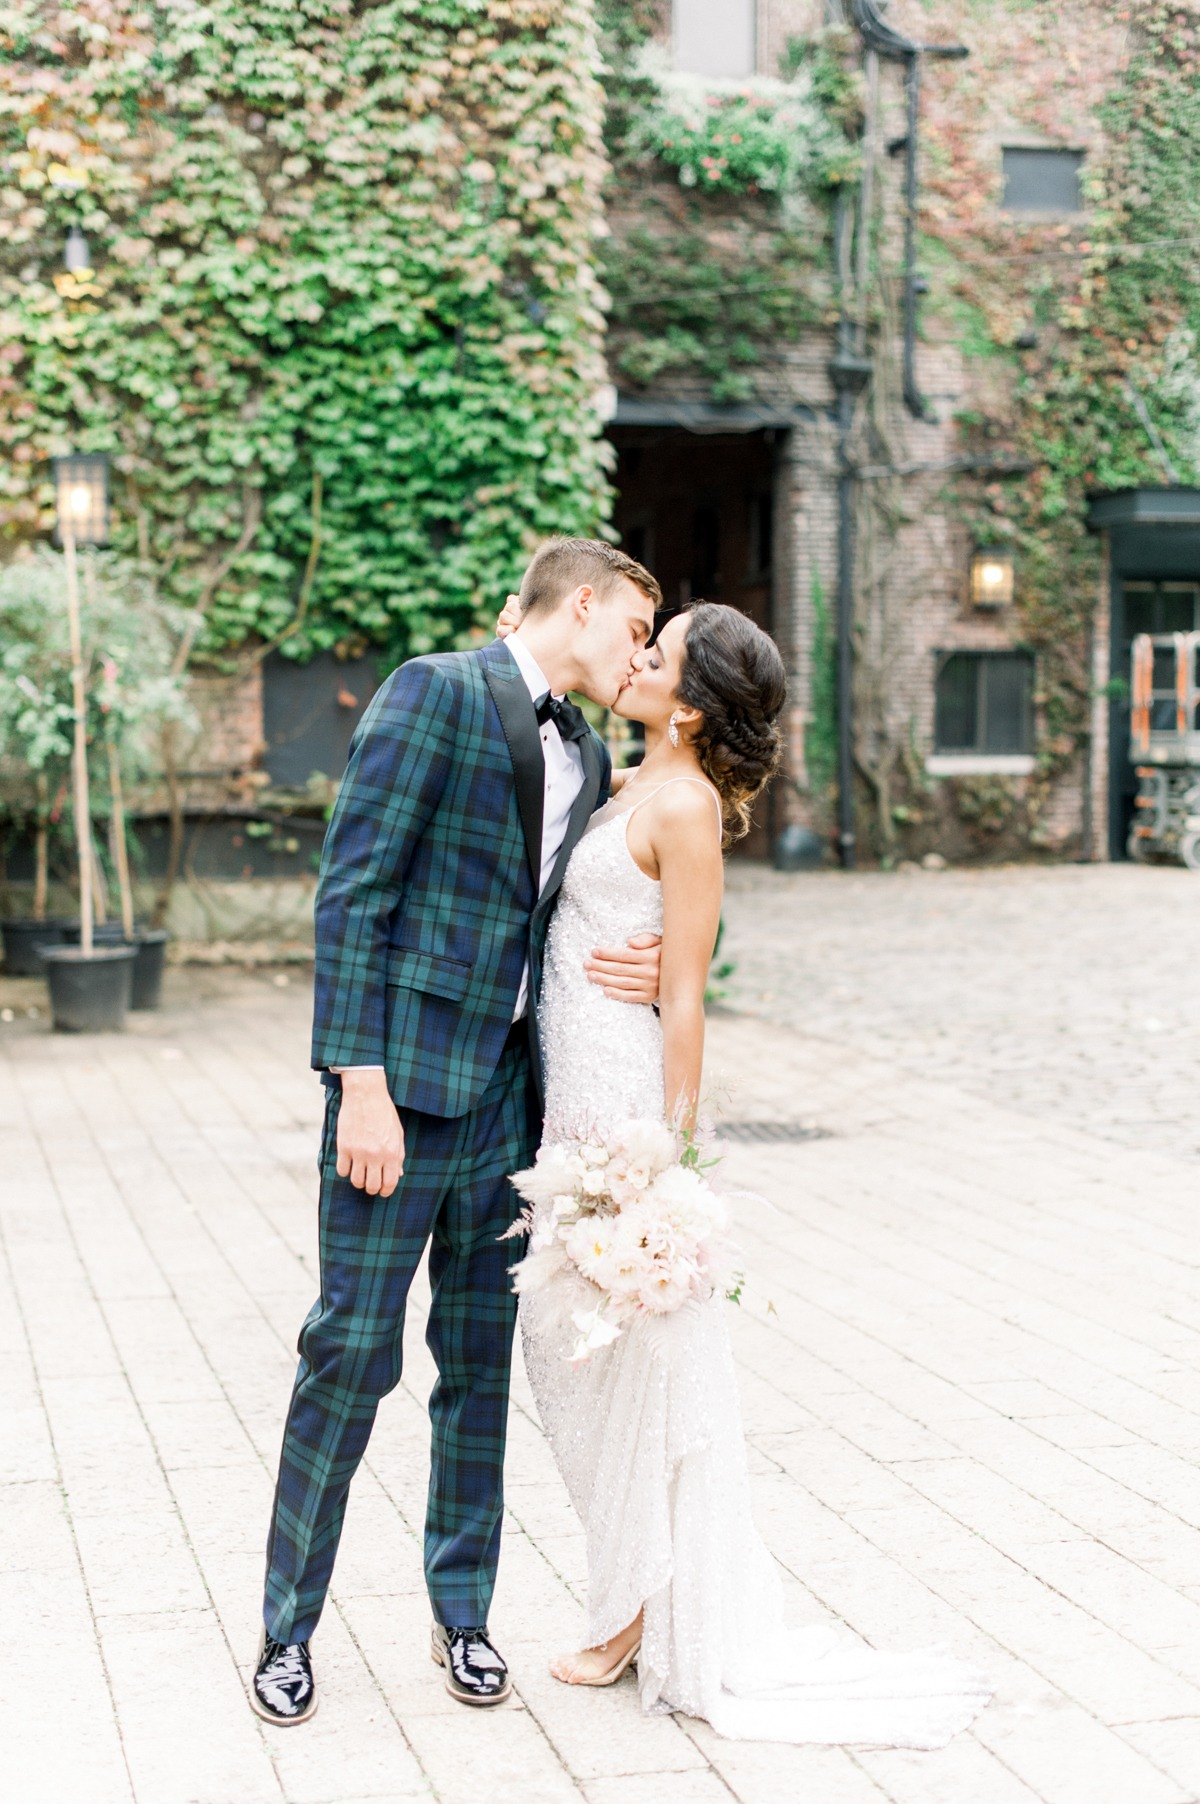 Plaid suit for the groom